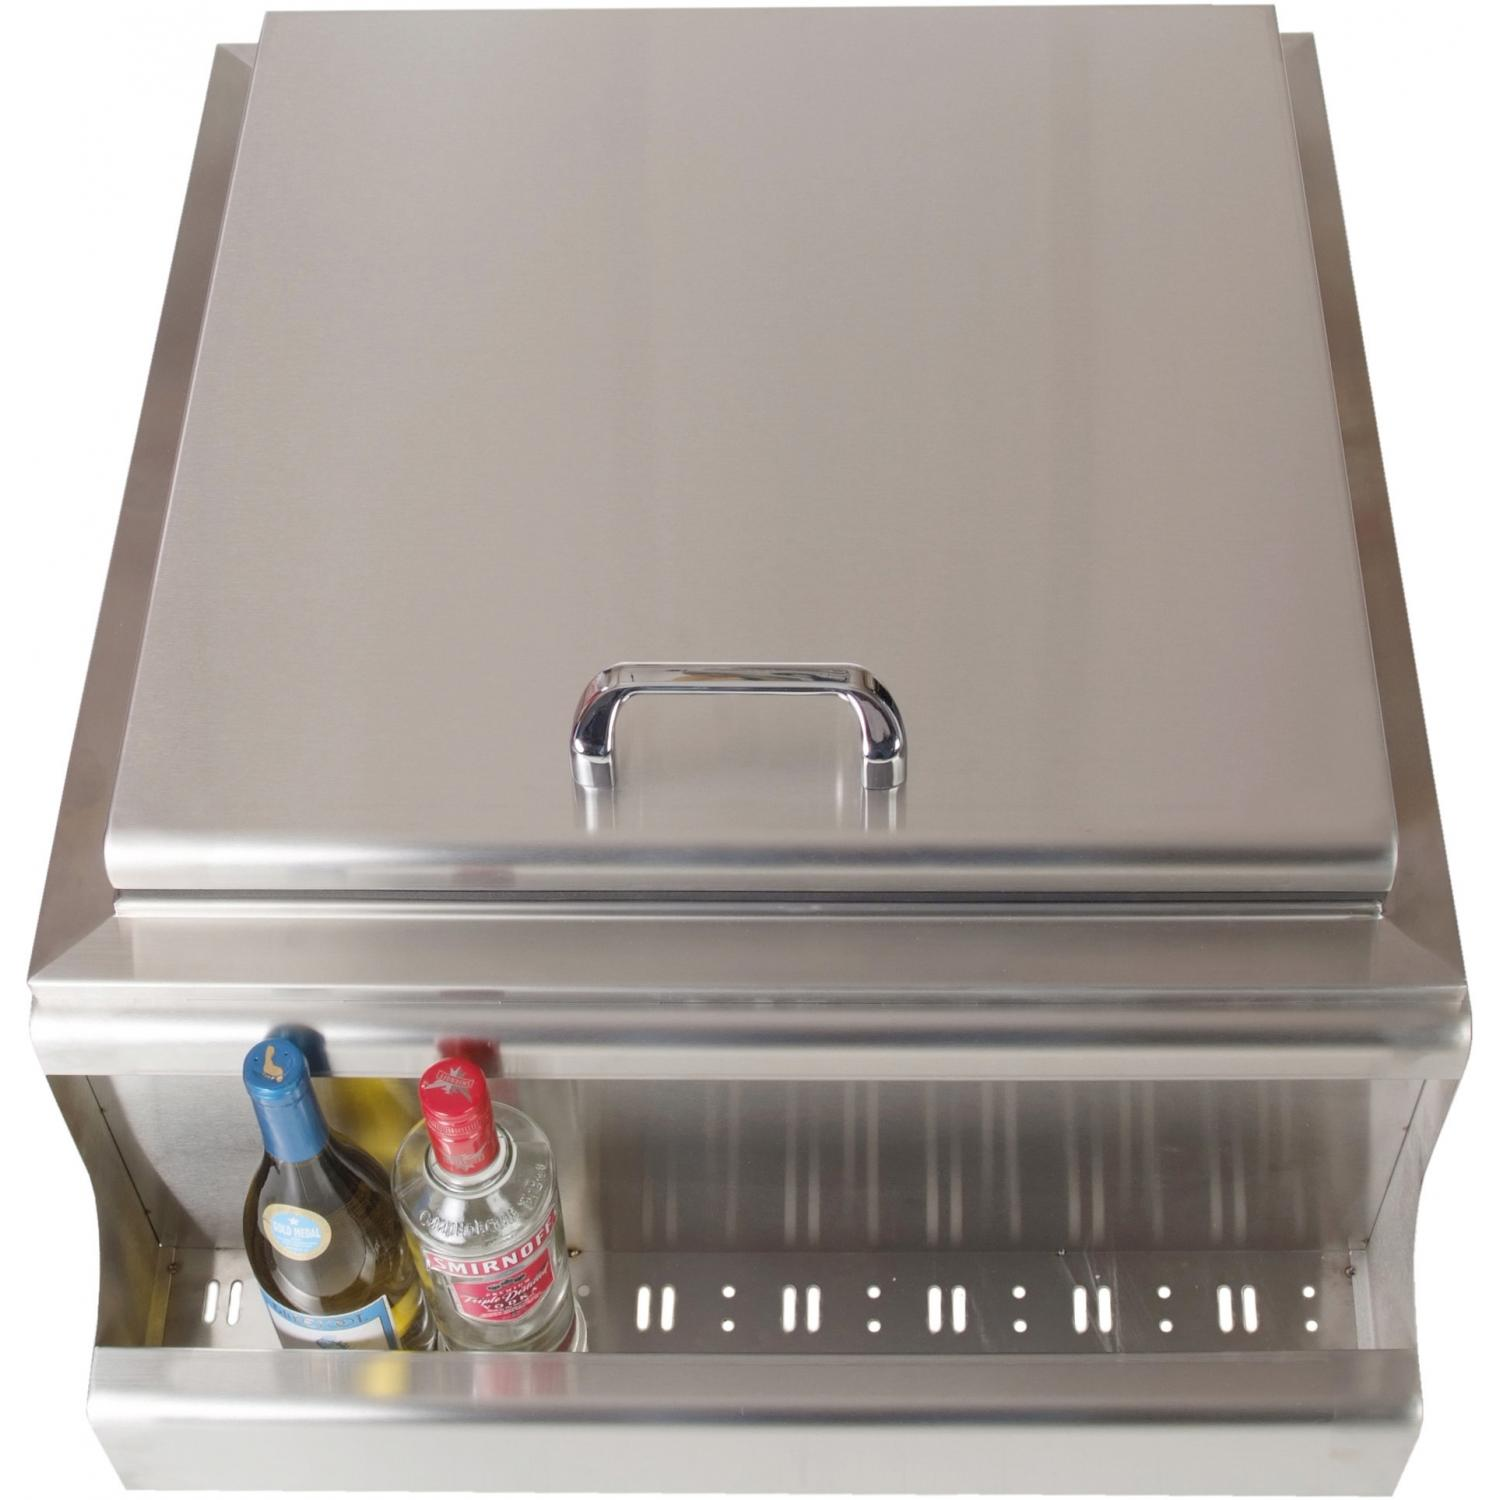 BBQ Guys Slide-In Ice Bin Cooler With Speed Rail